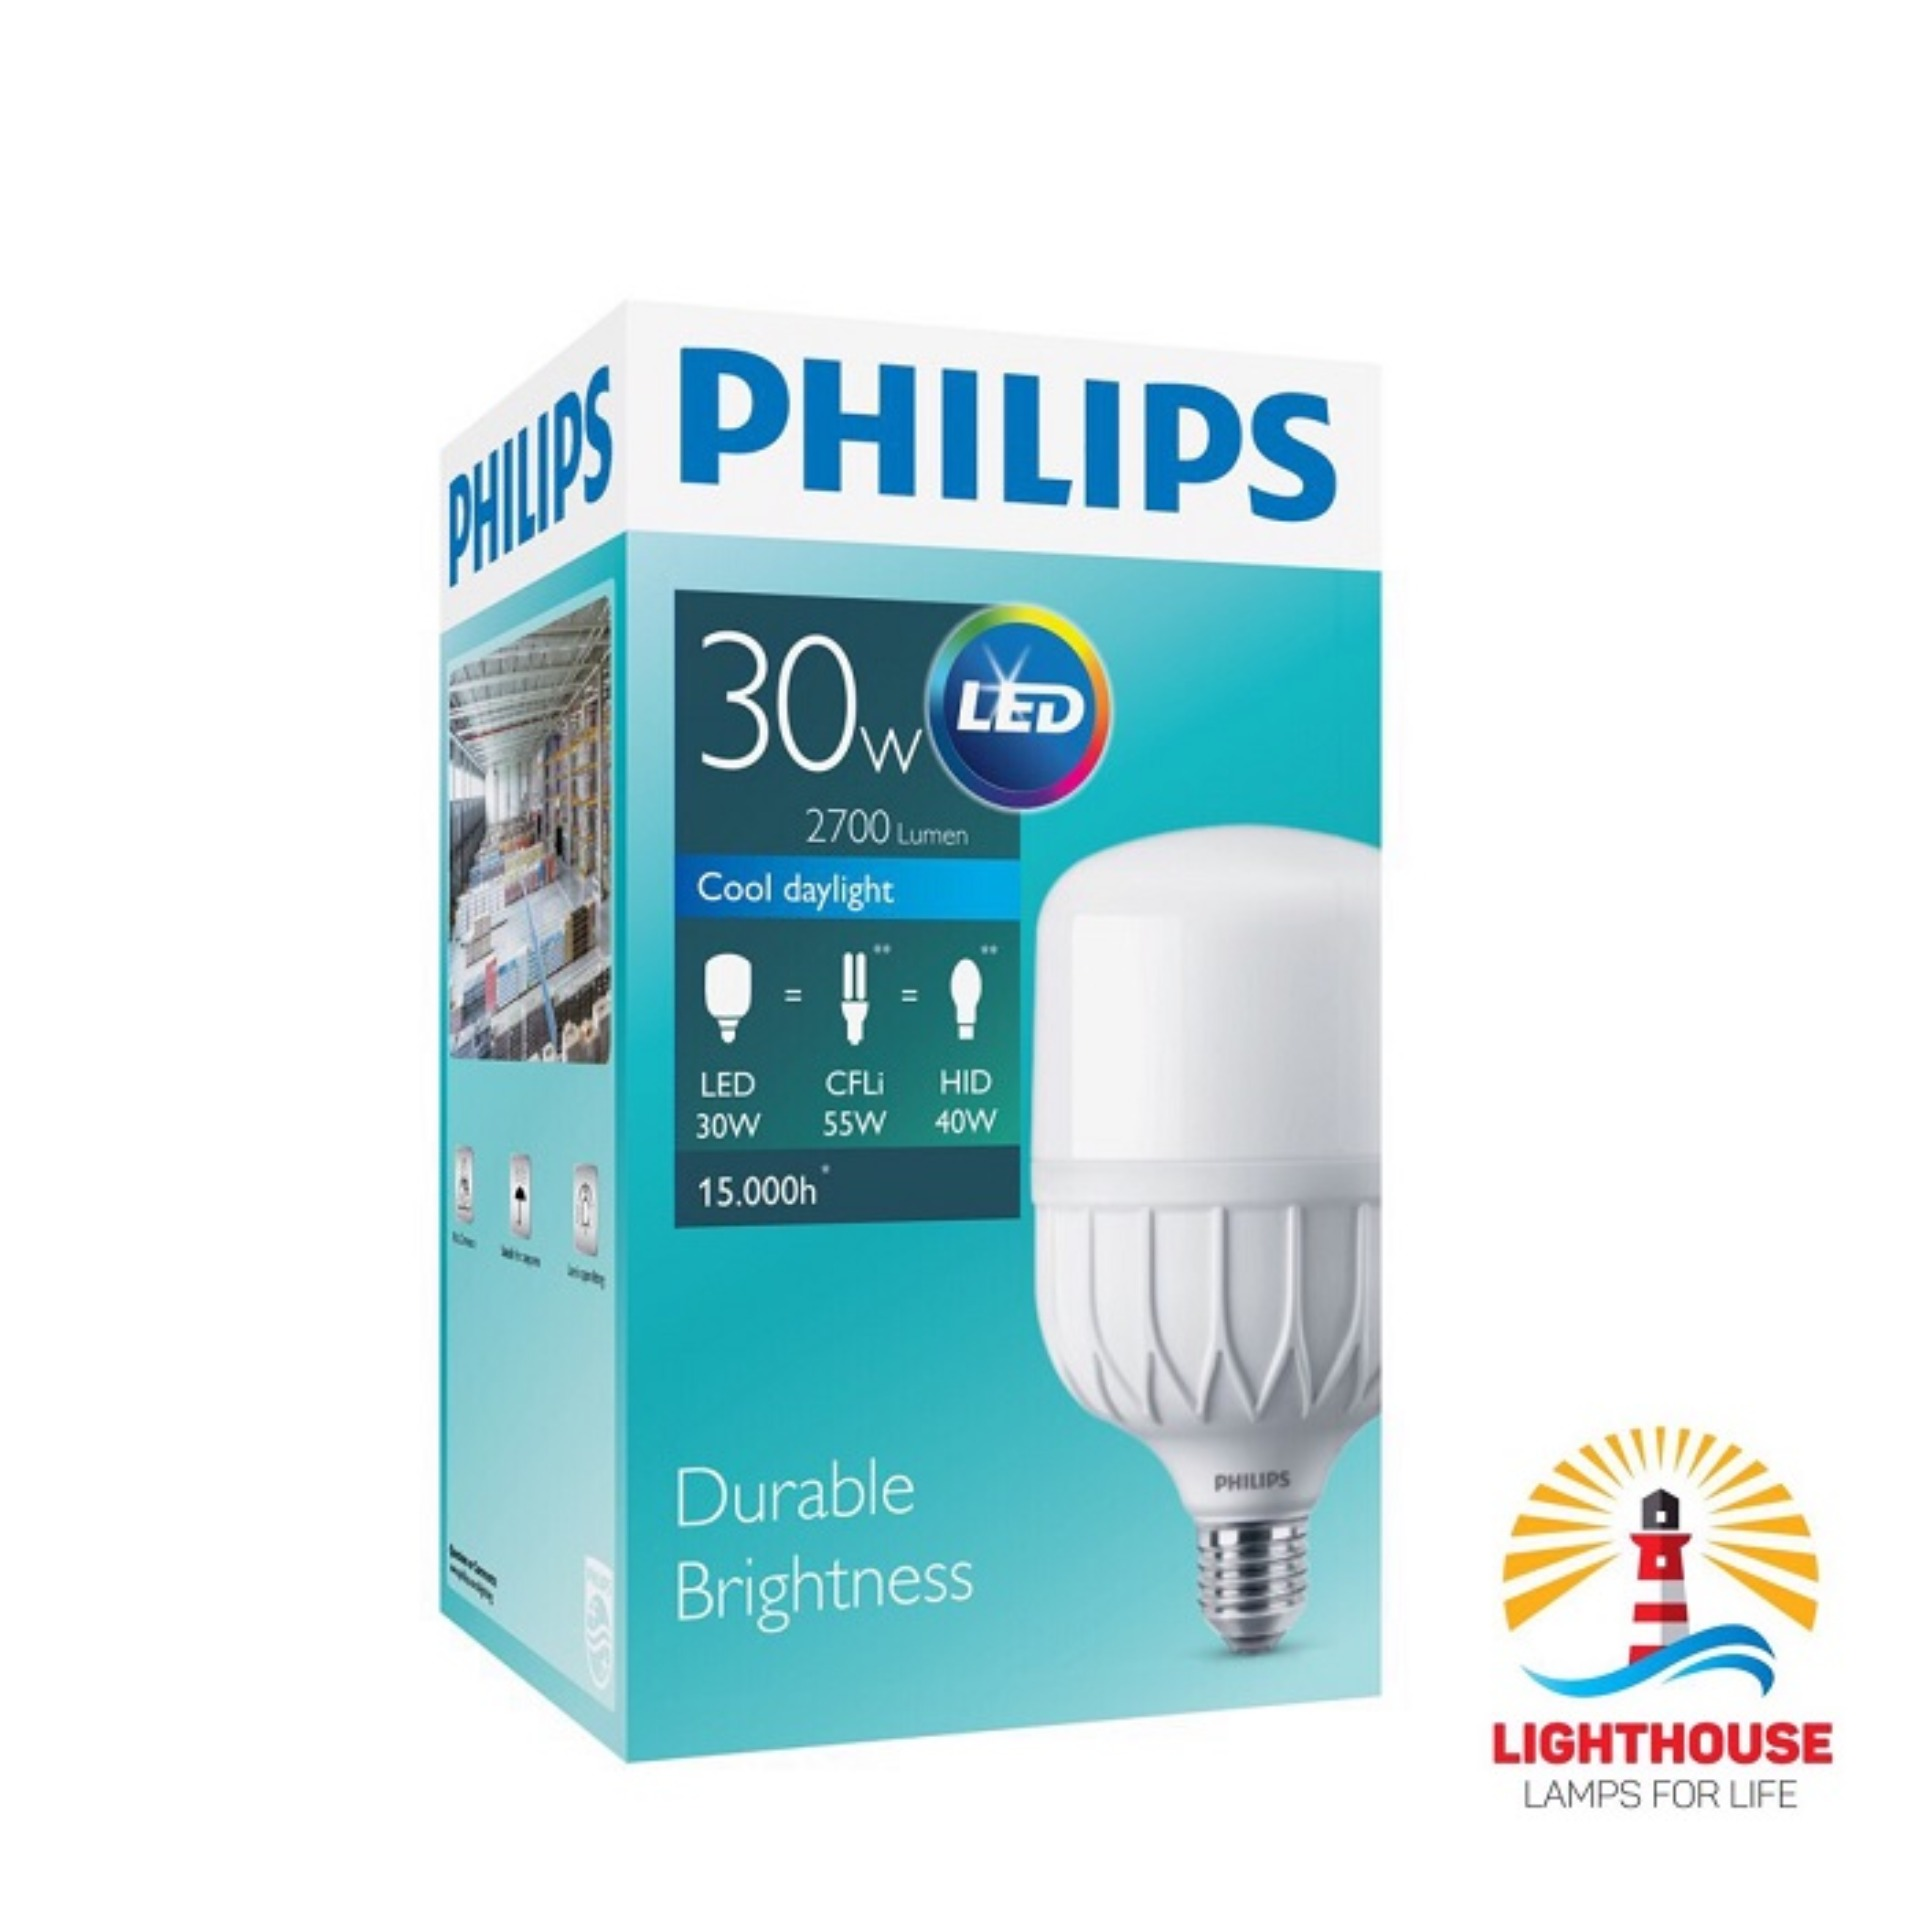 Philips Lampu LED TF 30W Led True Force 30 Watt Core HB 865 E27 Putih